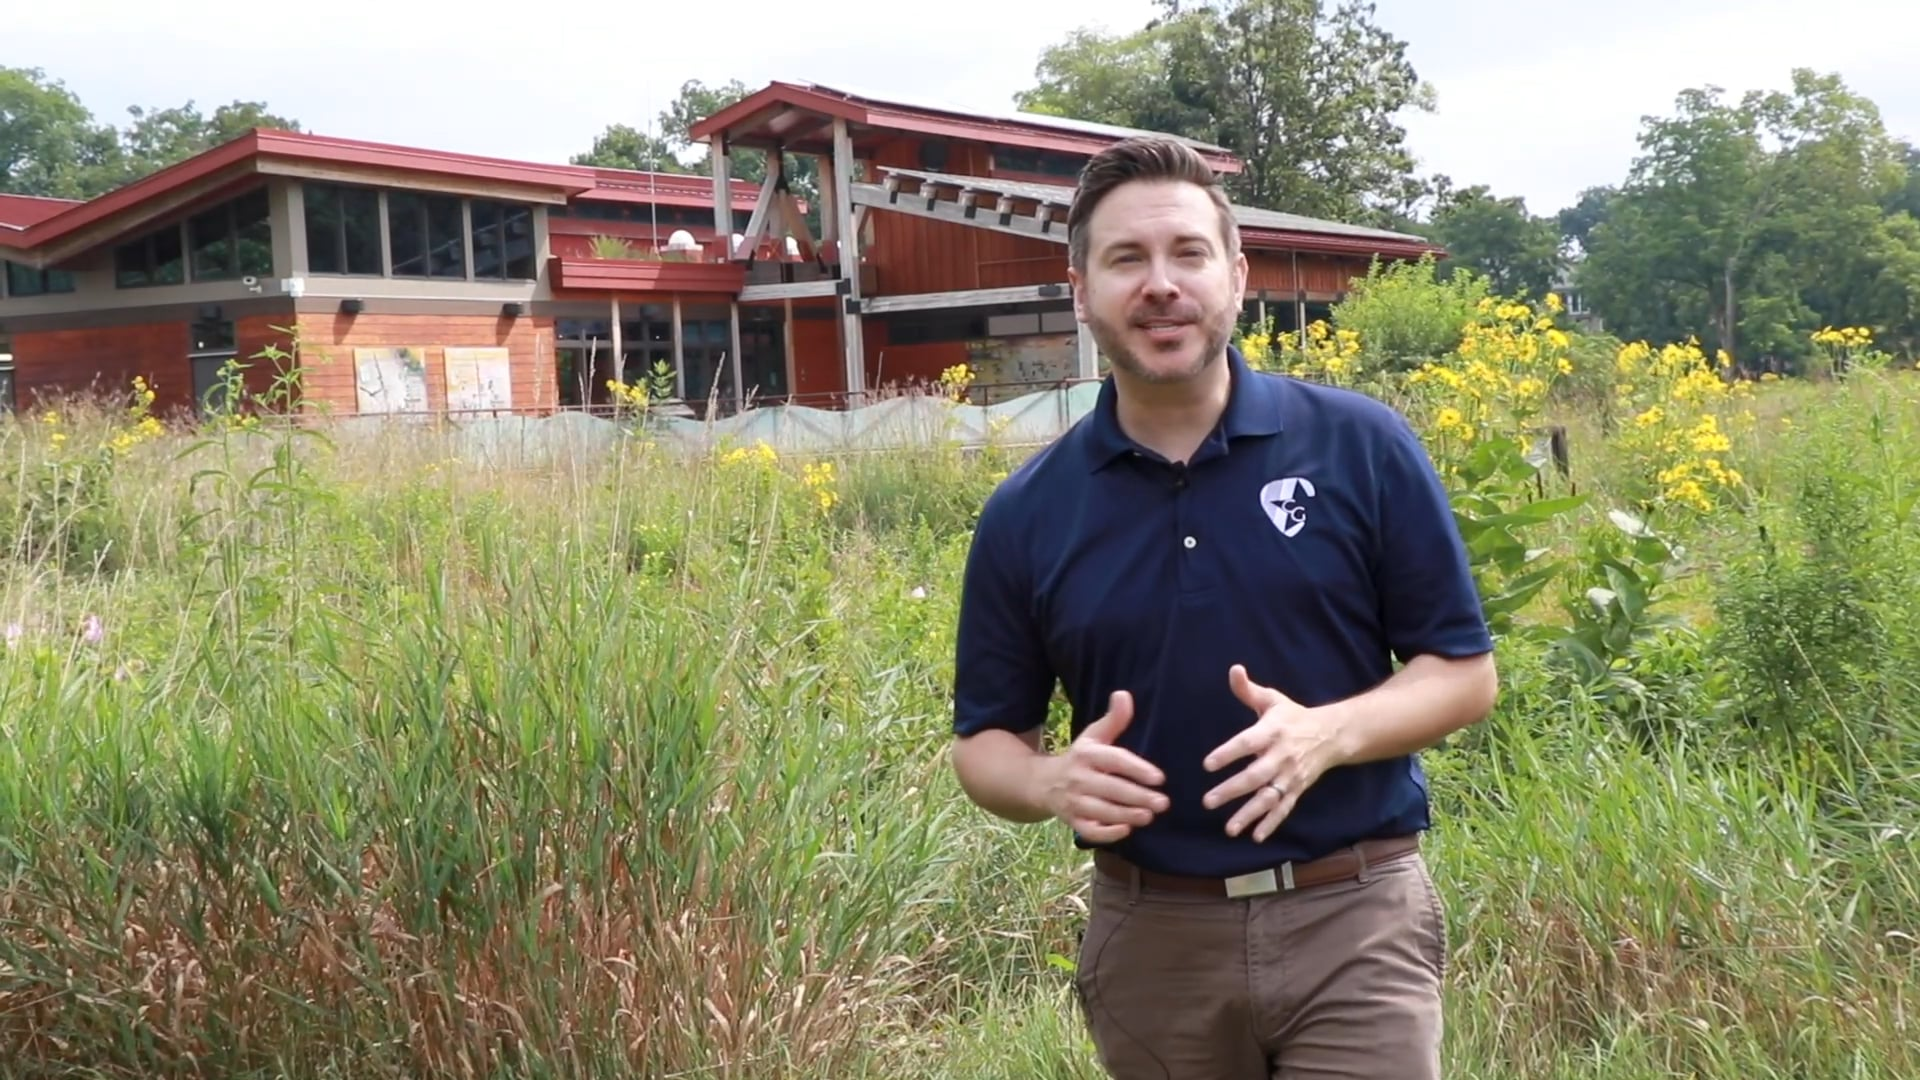 Sweet Home Chicagoland with Chris Grano - Knoch Knolls Nature Center